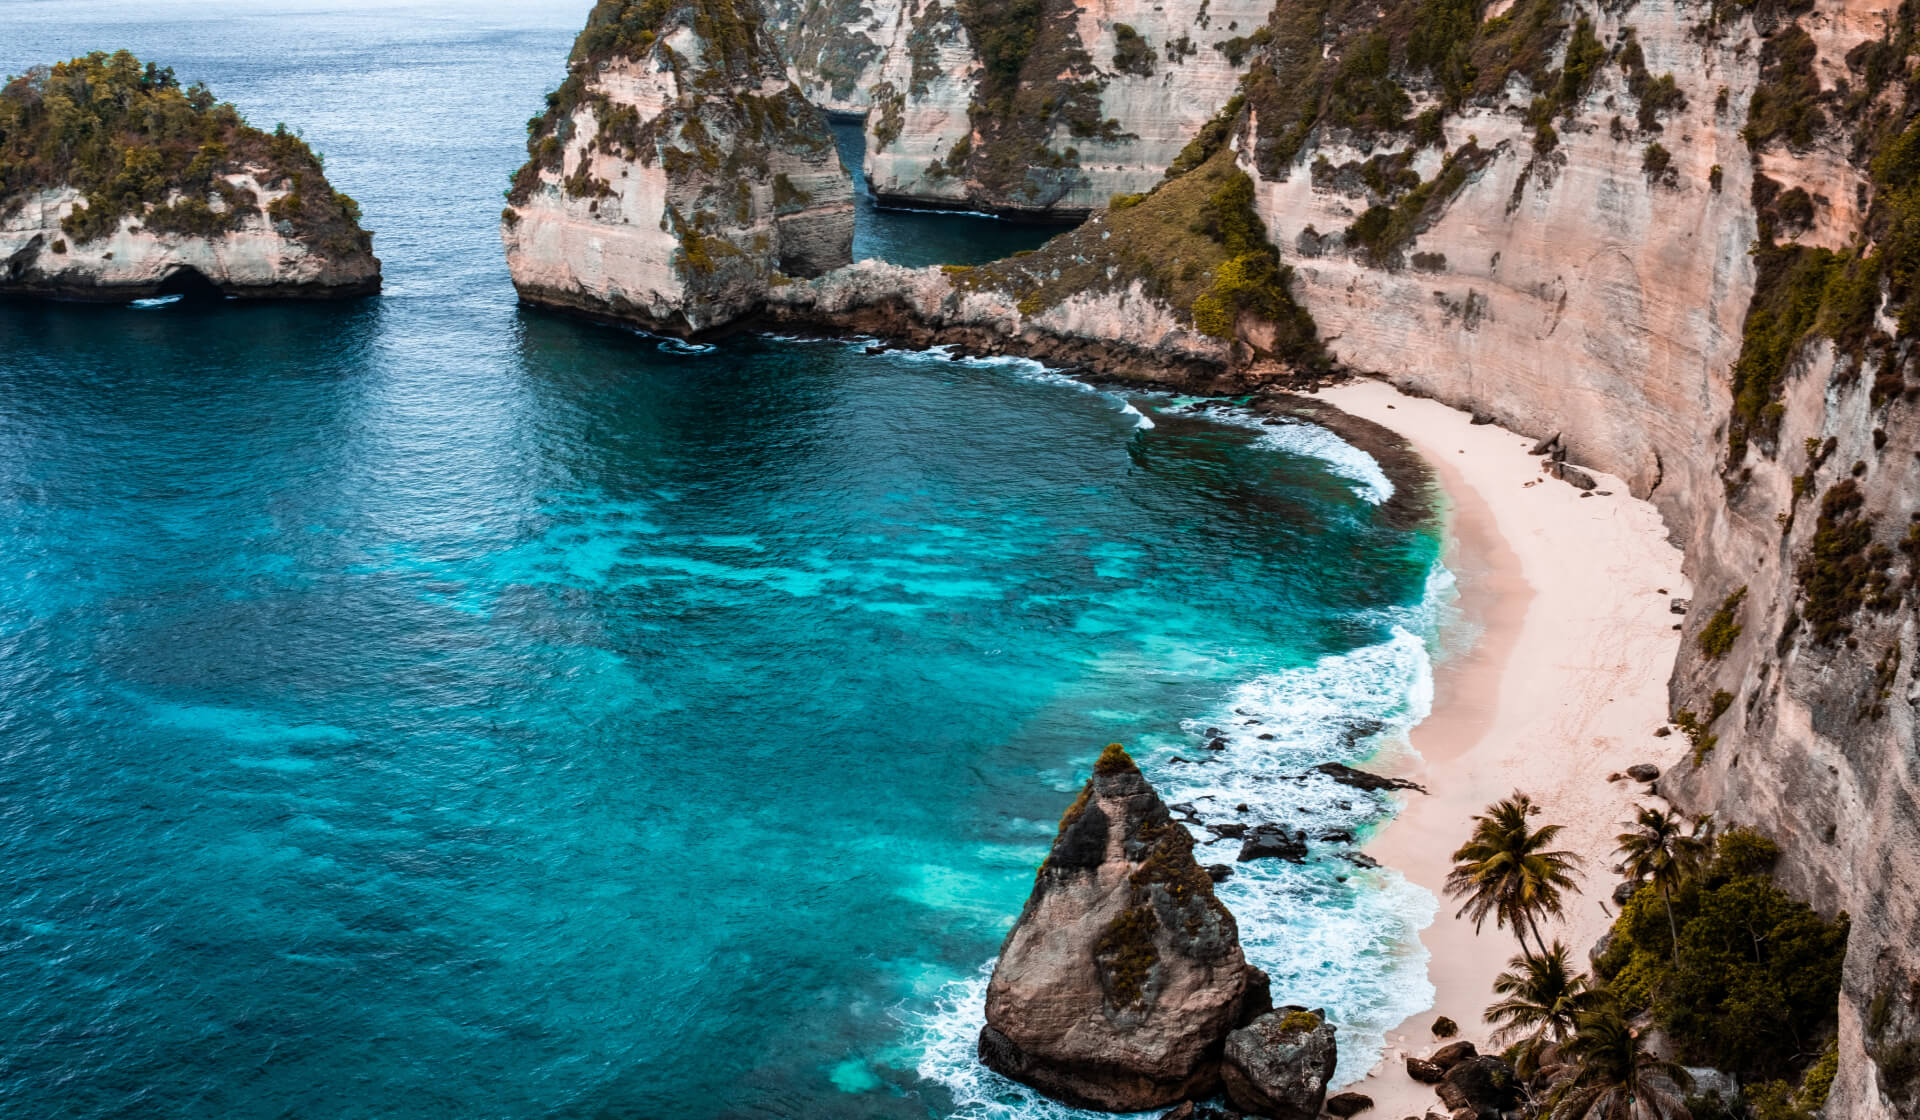 Beautiful, remote, tropical coastline in Bali with crystal clear blue water and a sandy beach below a cliff